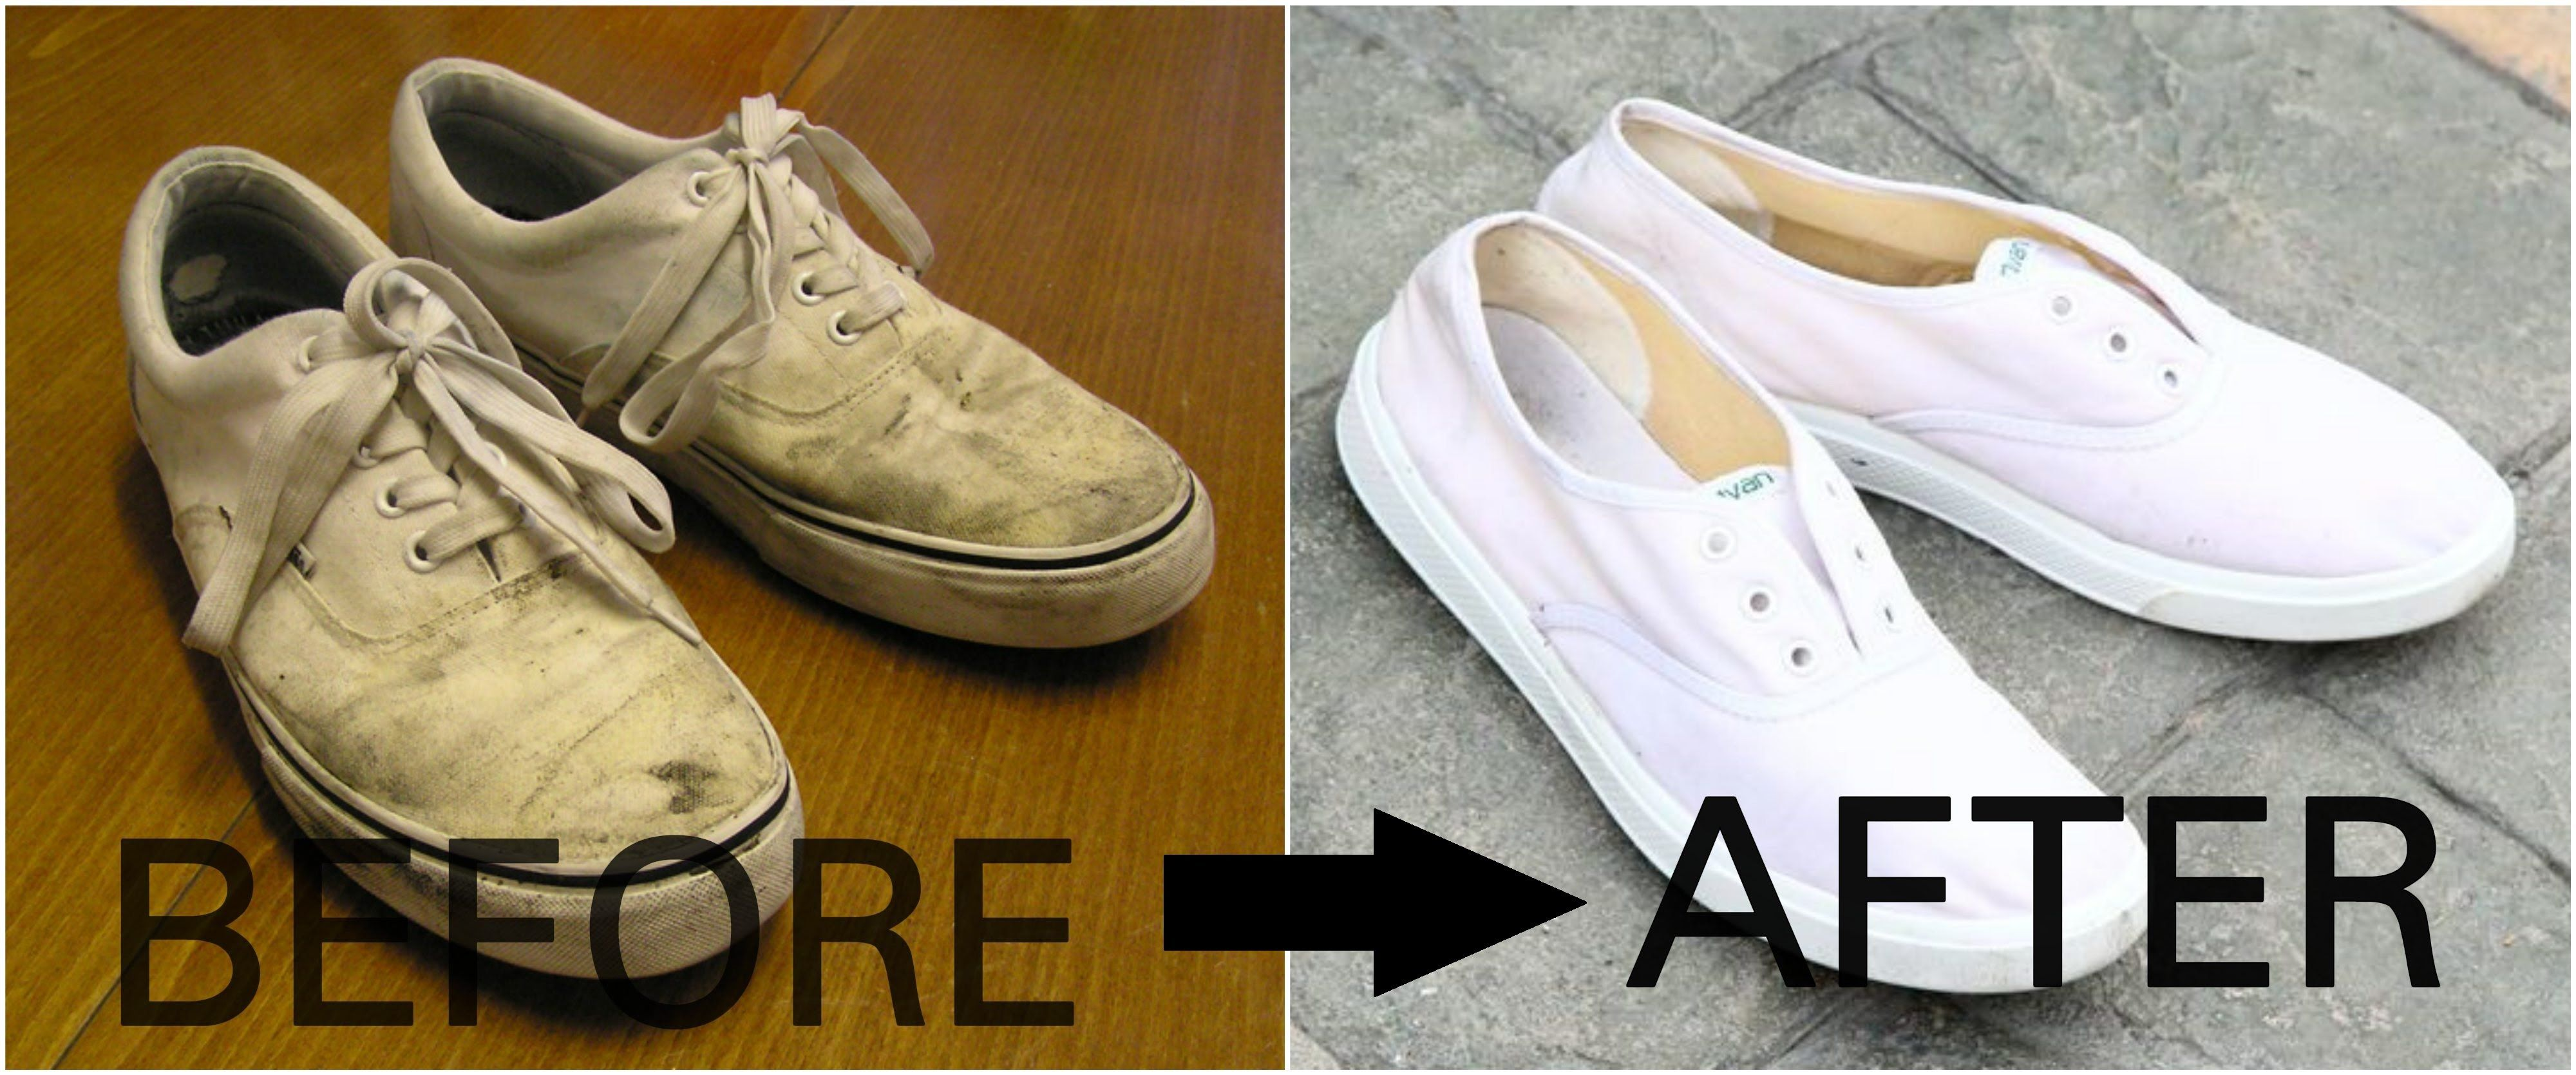 How to Clean Your White Converse | D I Y | Pinterest | White converse,  Converse and Life hacks